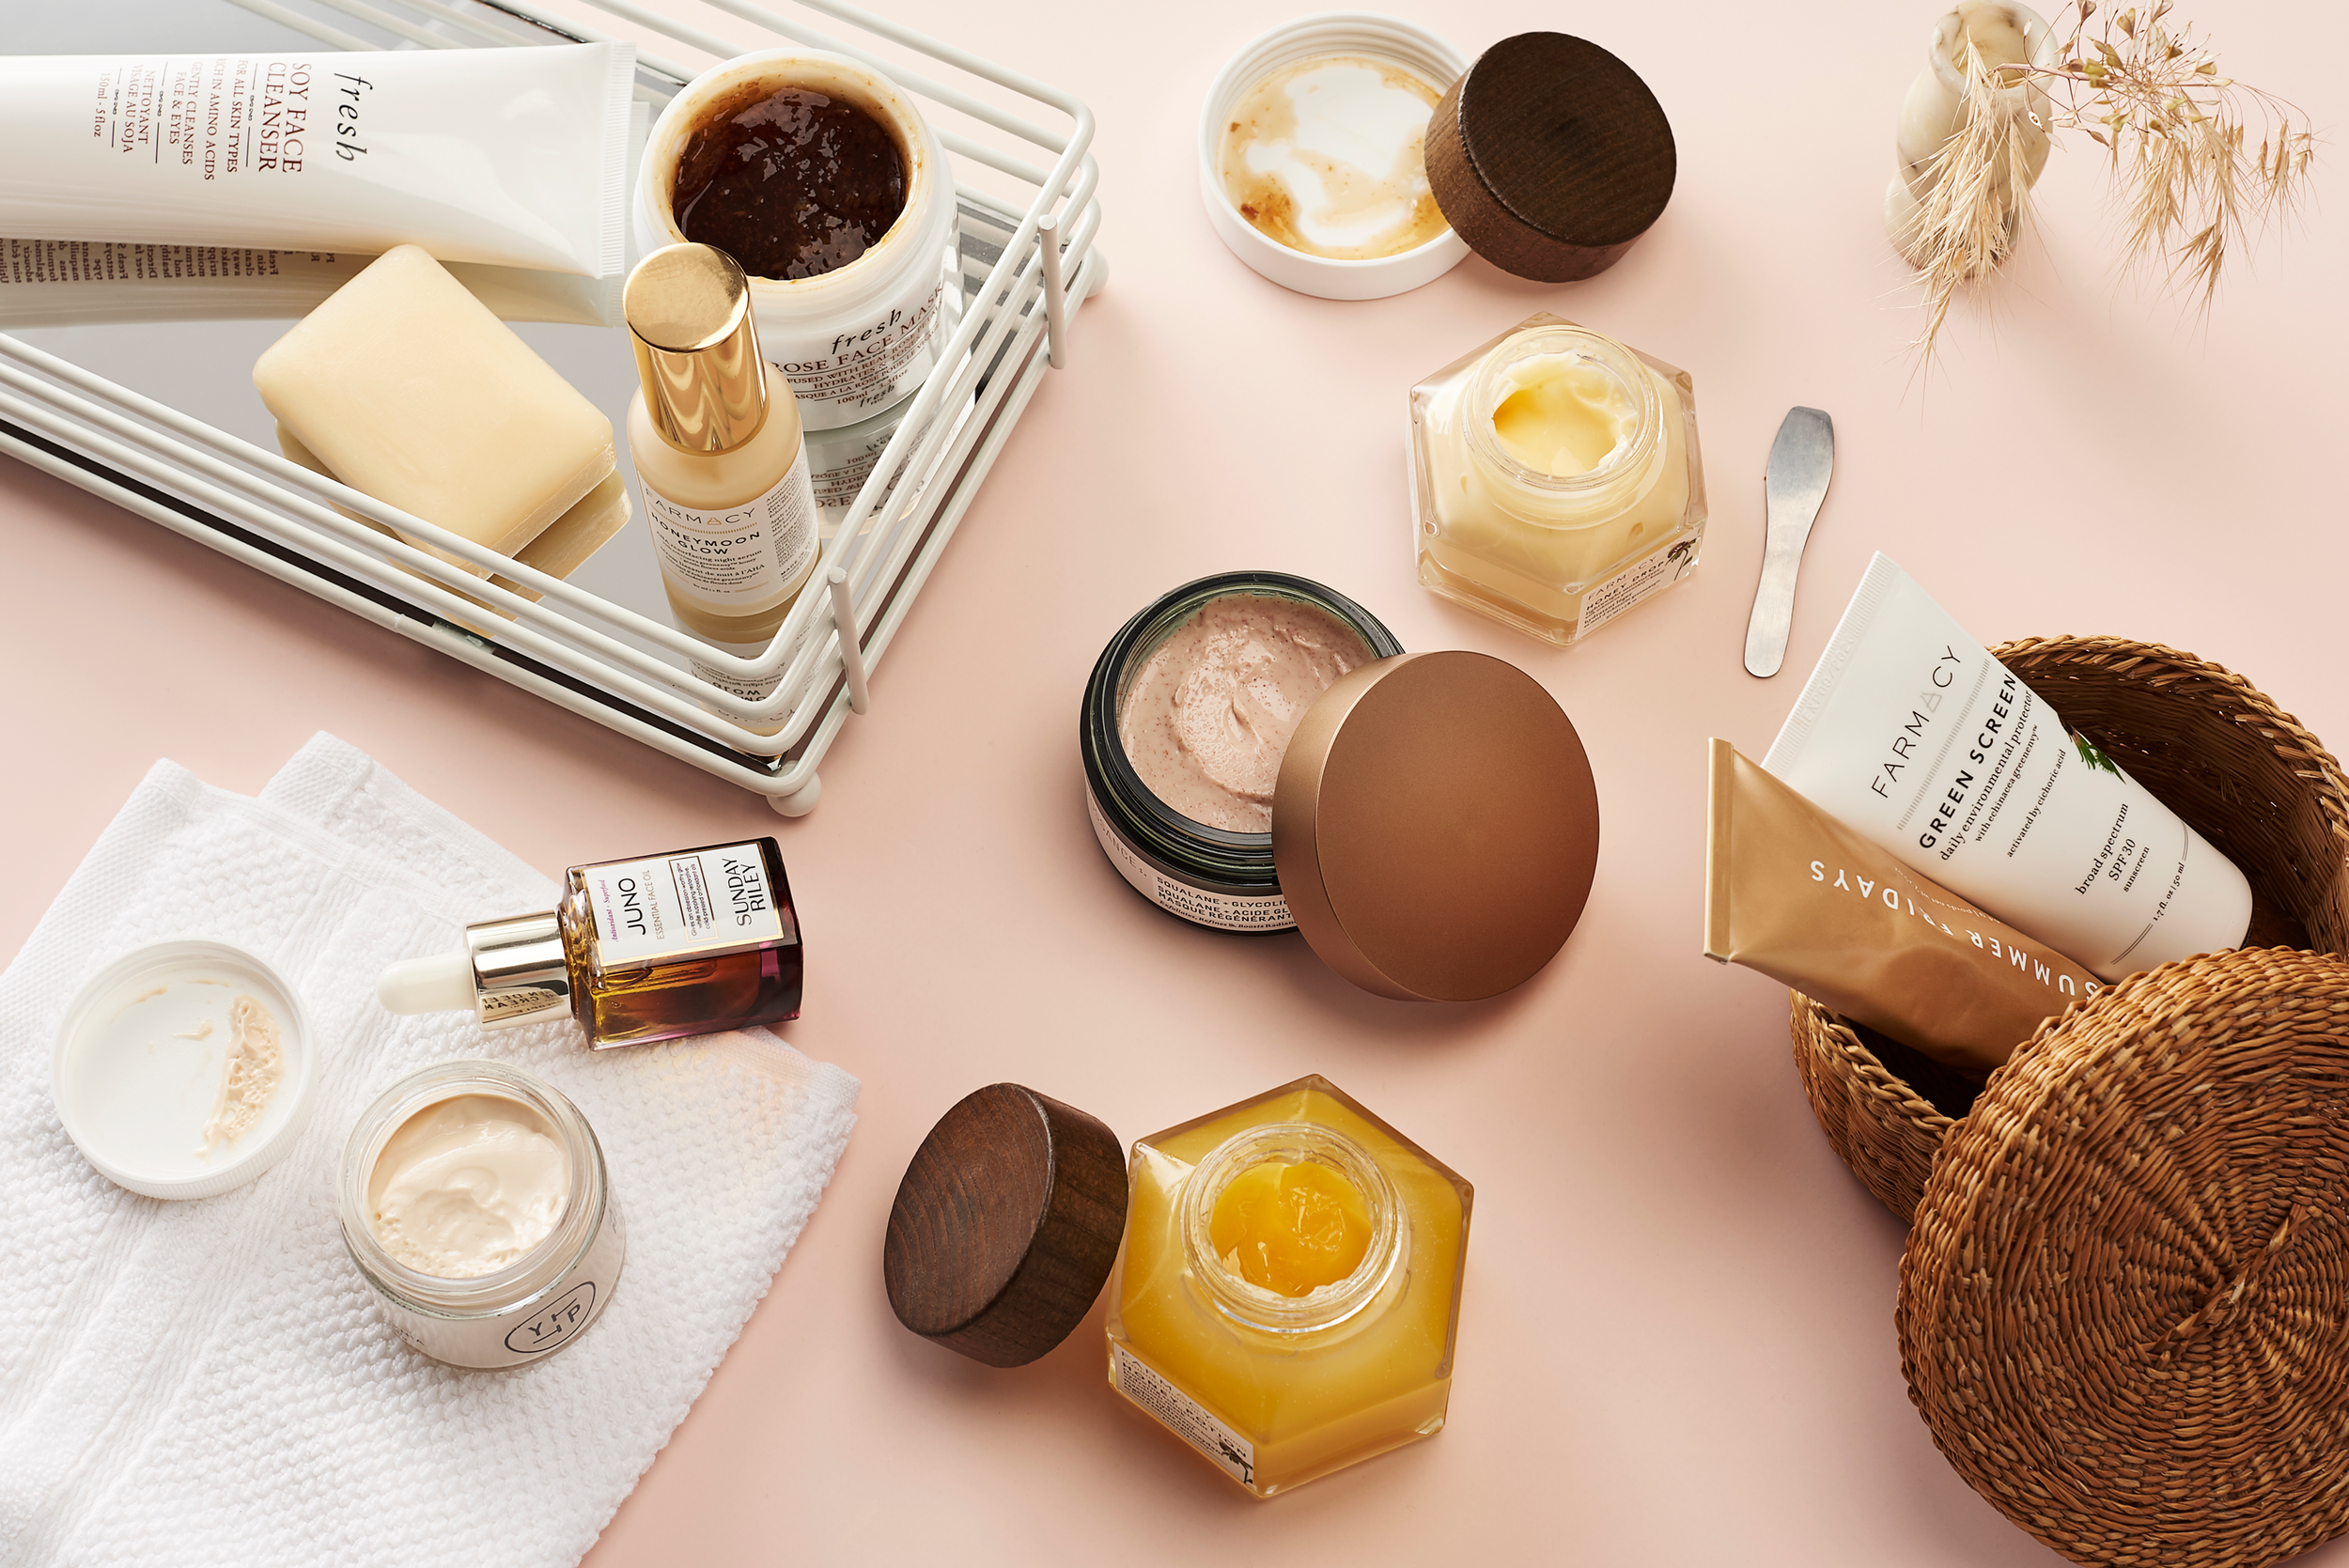 190613_Product_SkinCare_237.png